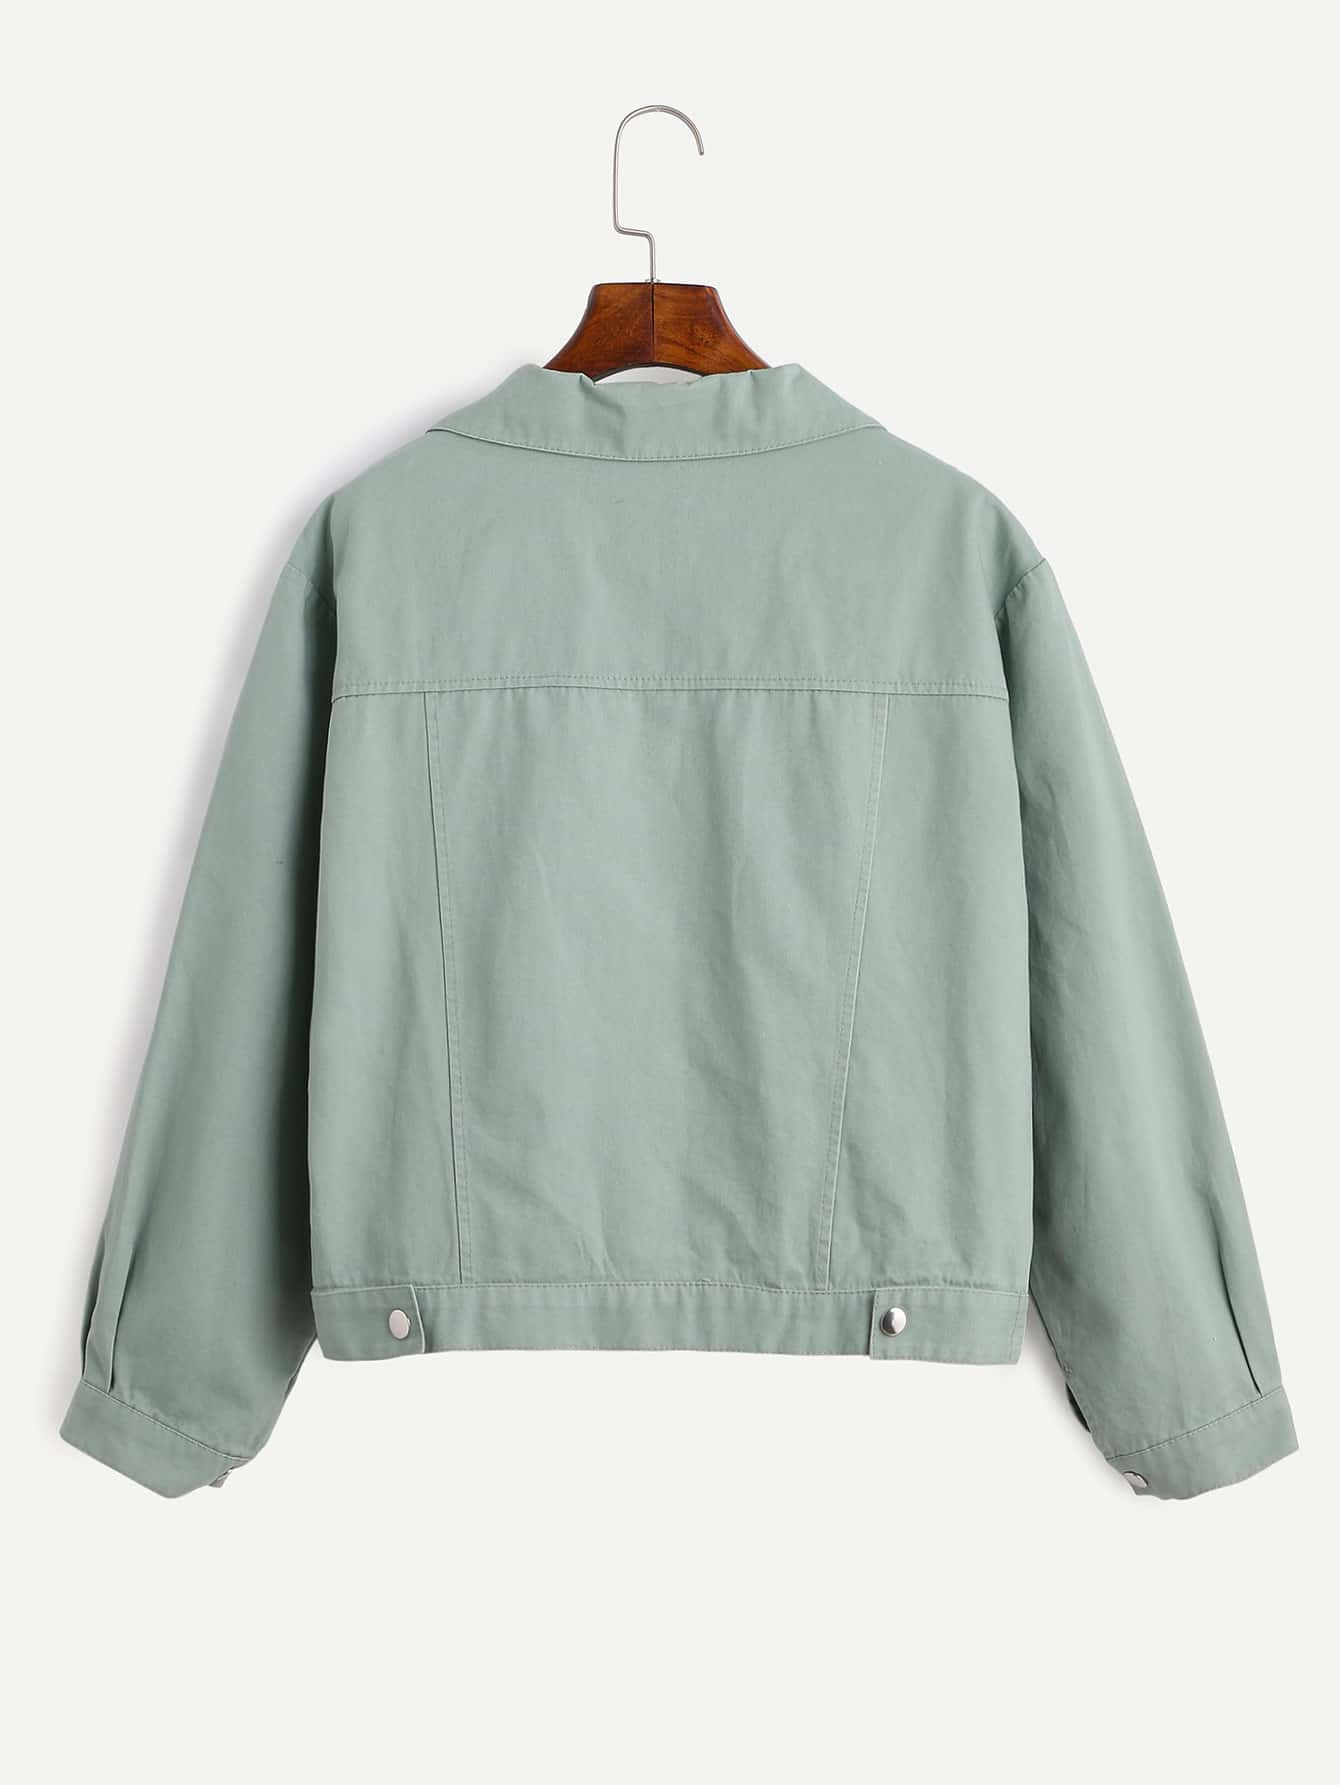 Pale Green Zipper Front Jacket With Pockets